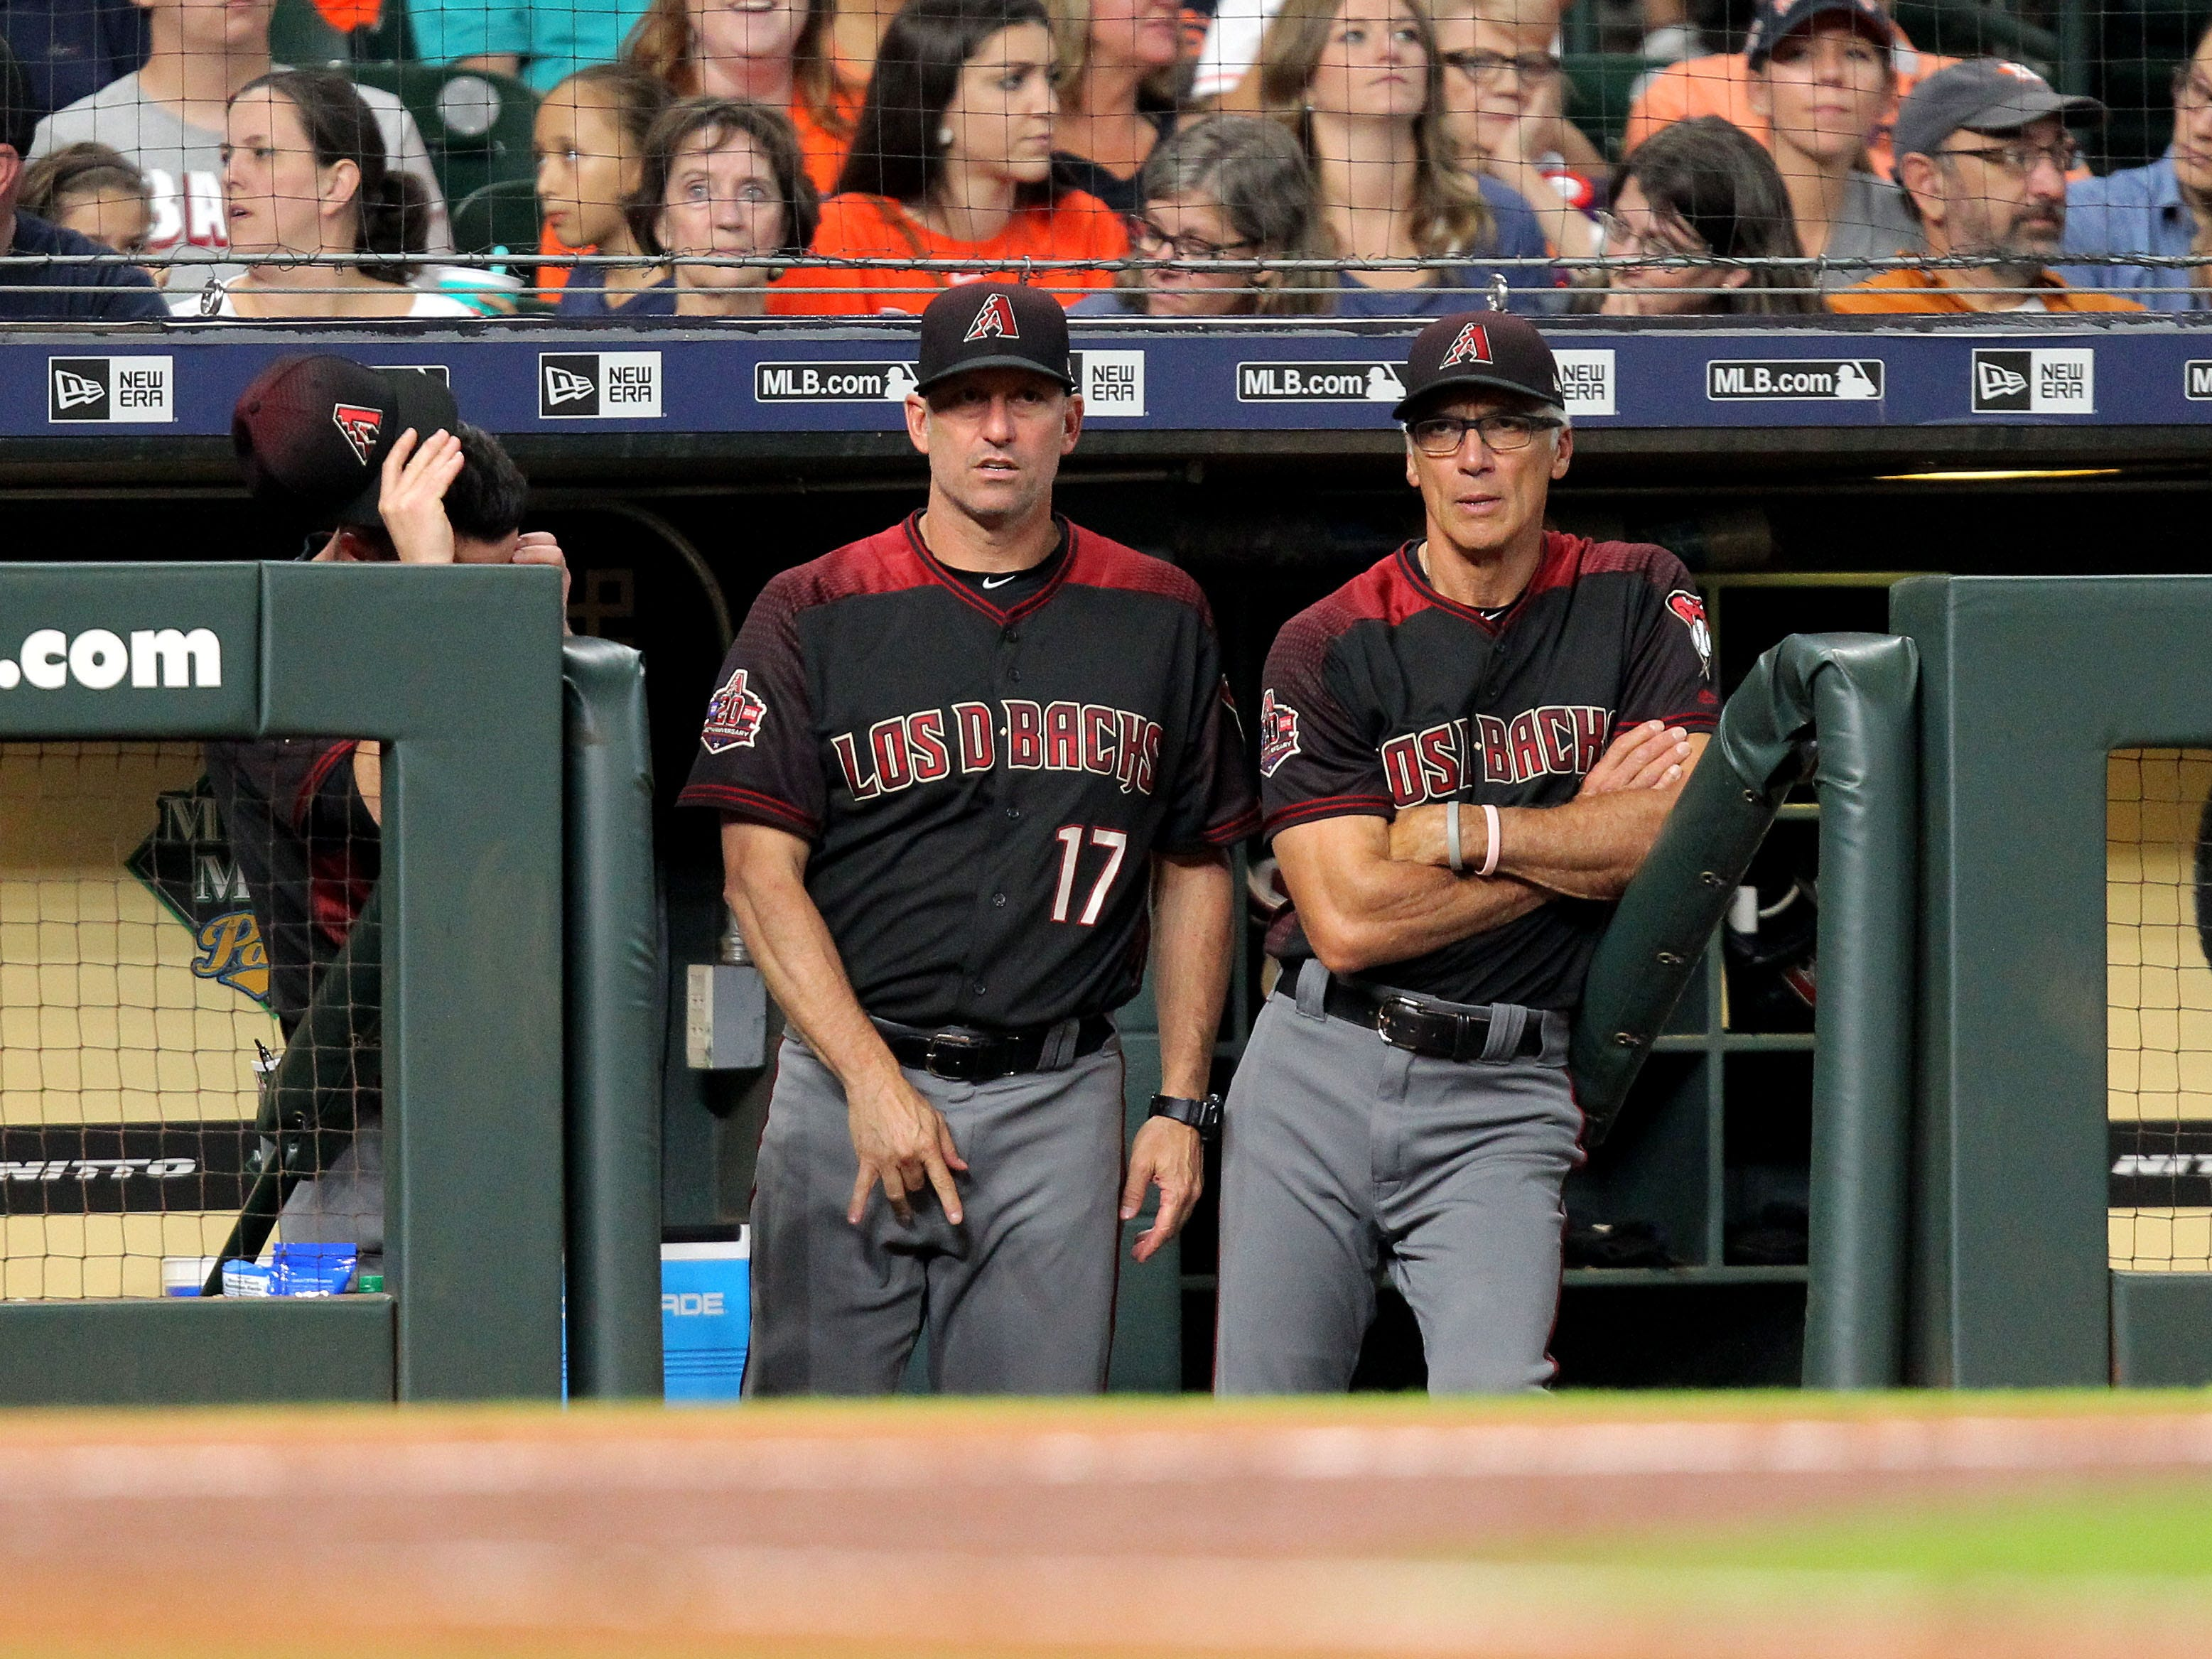 Sep 15, 2018; Houston, TX, USA; Arizona Diamondbacks manager Torey Lovullo (17, left) signals to Arizona Diamondbacks starting pitcher Zack Godley (52, not shown) during the third inning against the Houston Astros at Minute Maid Park. Mandatory Credit: Erik Williams-USA TODAY Sports